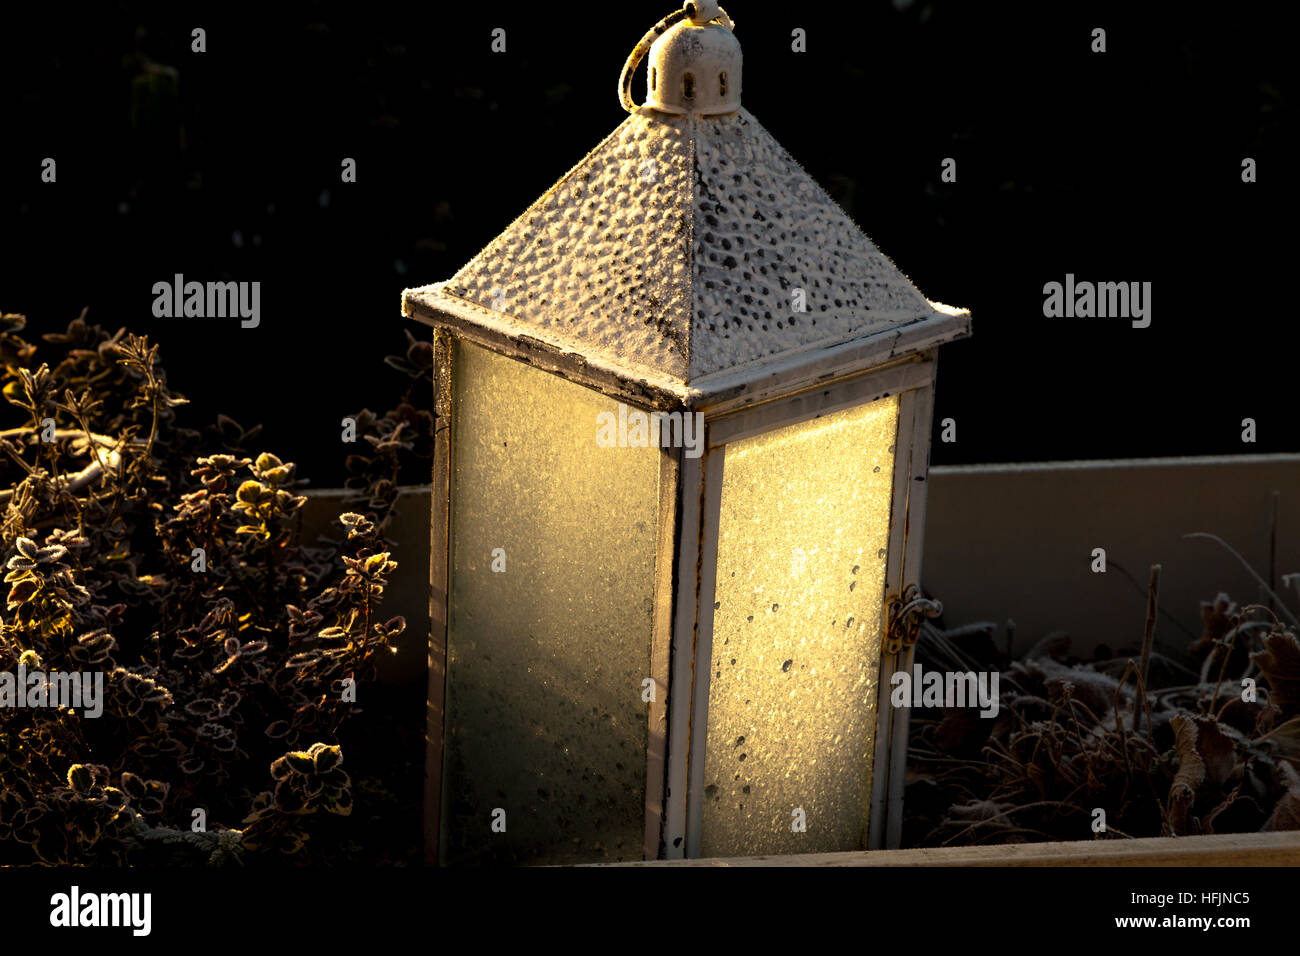 Hoar frost on a garden lantern in cold winter sundlight - Stock Image